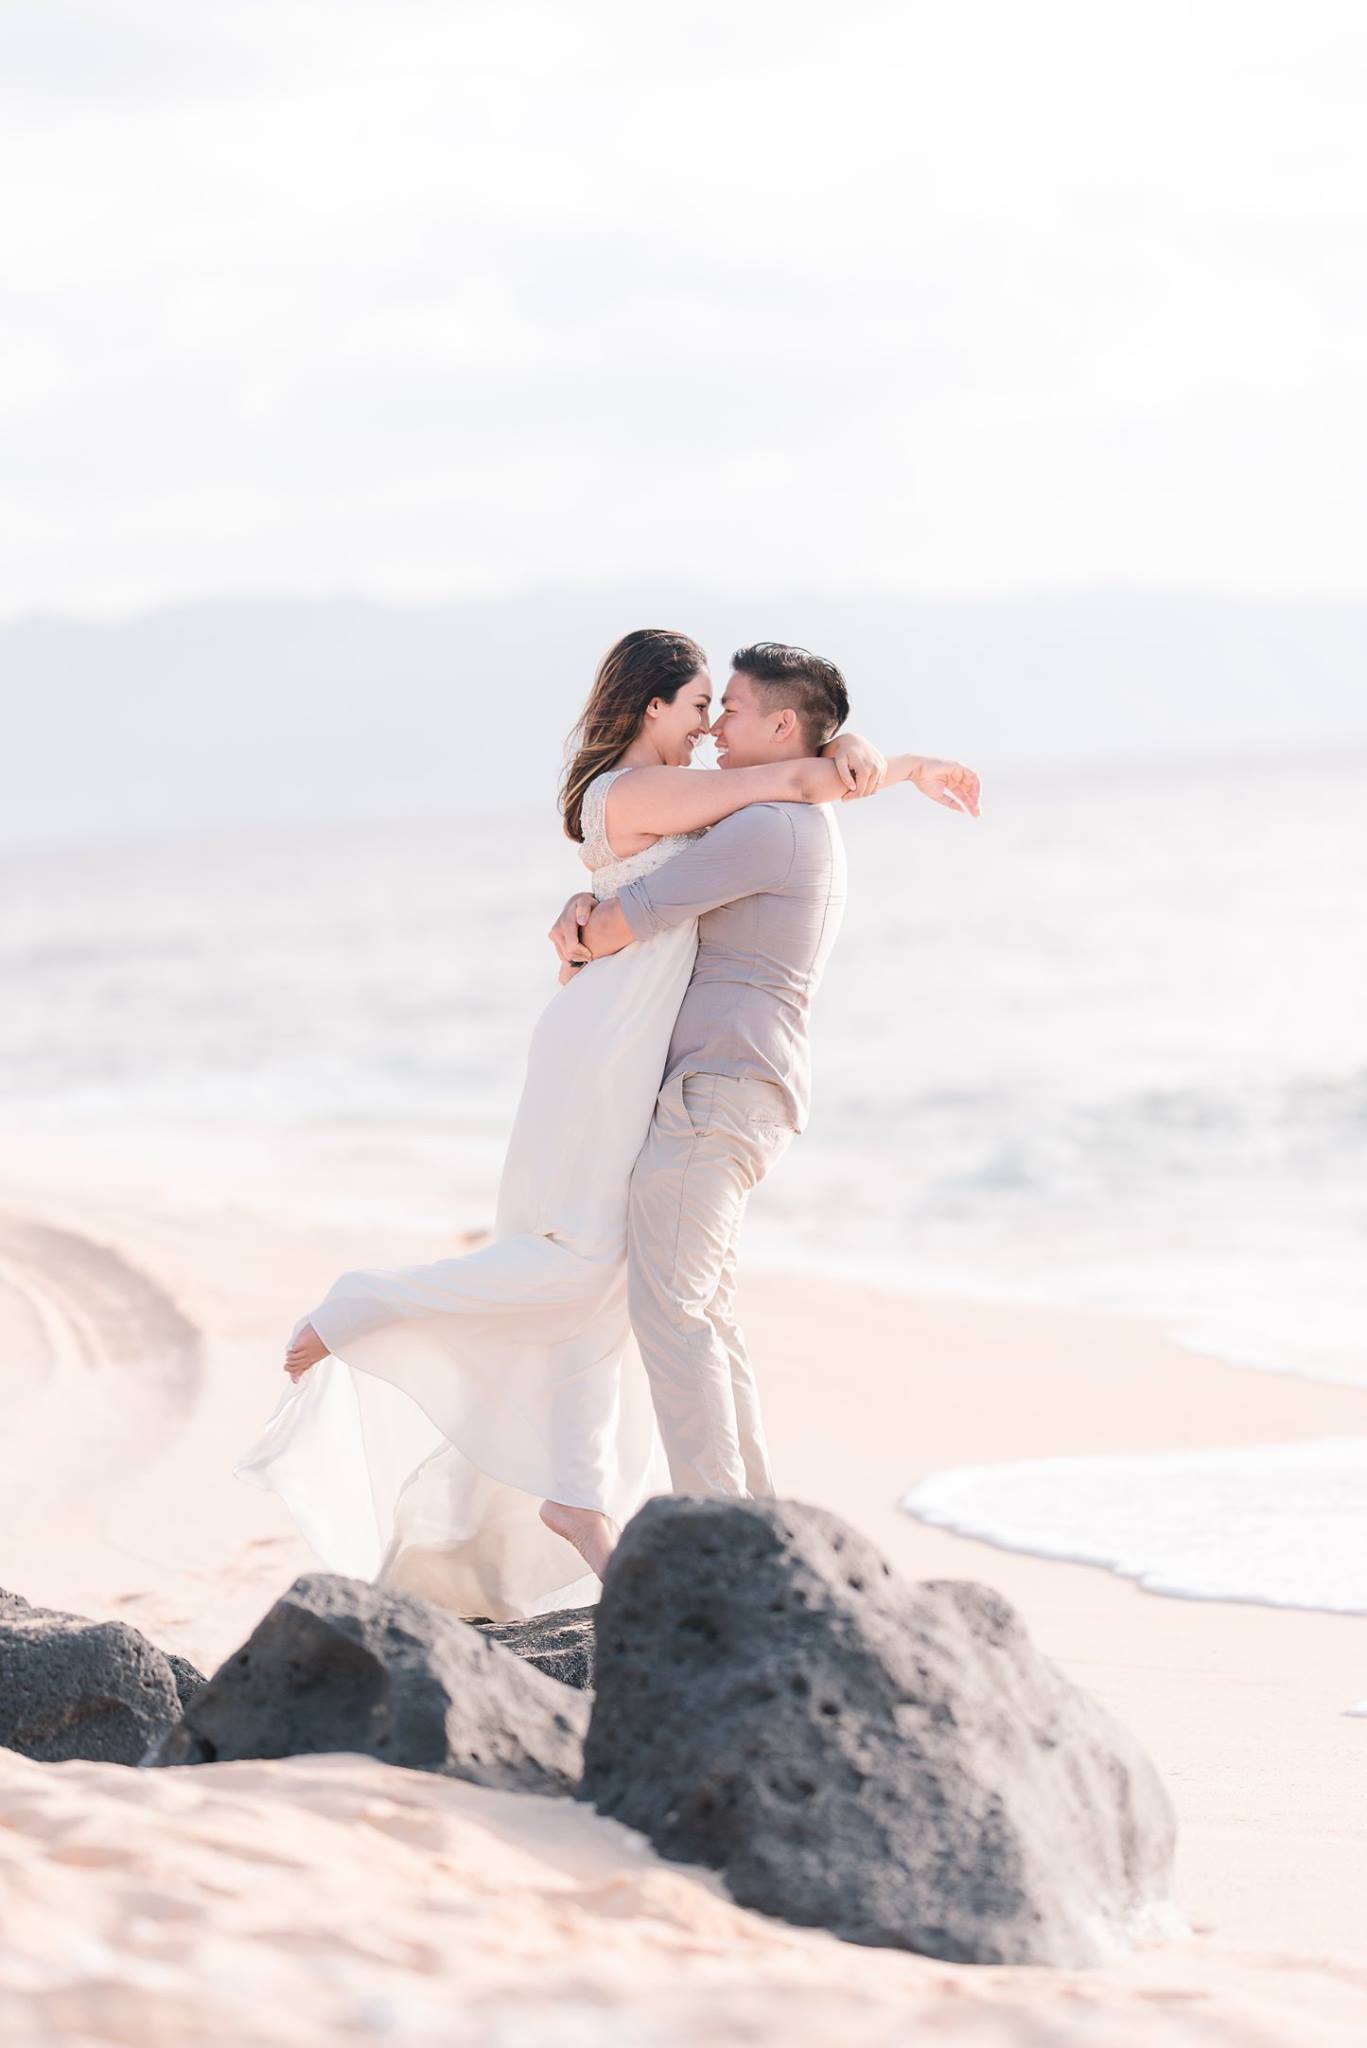 A couple holding each other as they pose by the beach